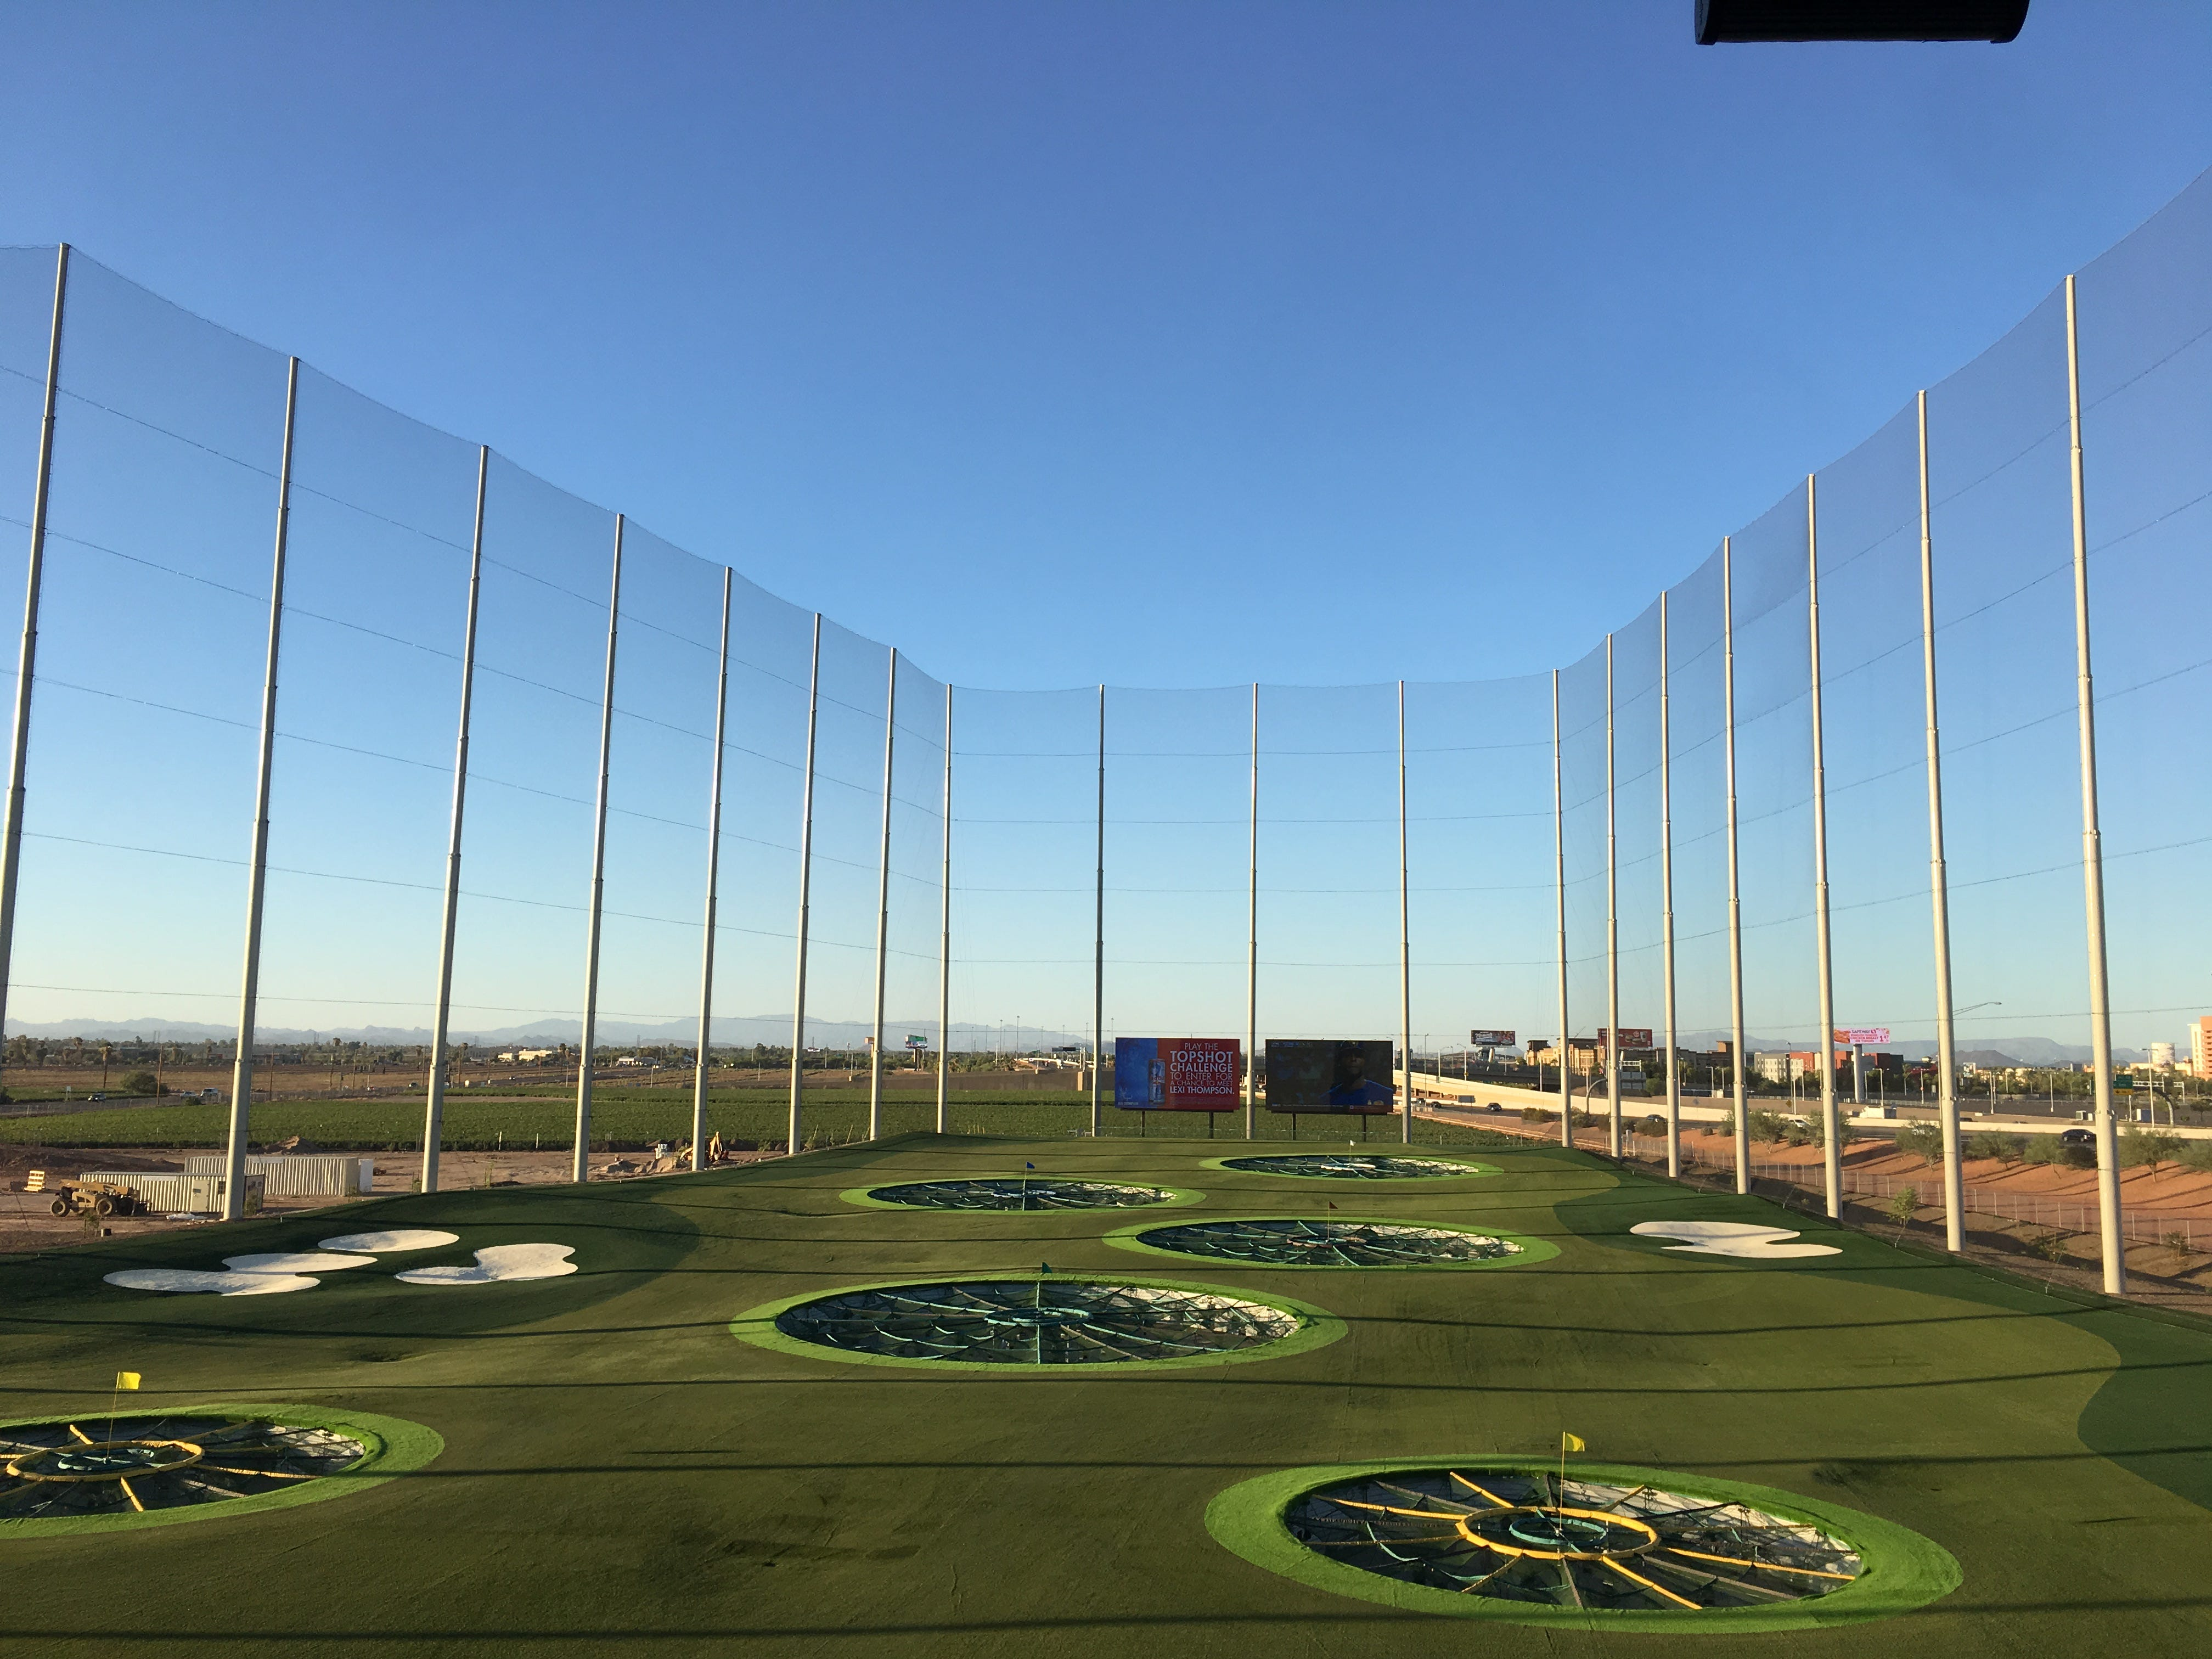 Targets are spread out across Topgolf Glendale's driving range, which features two high-definition TVs at the end of the range.